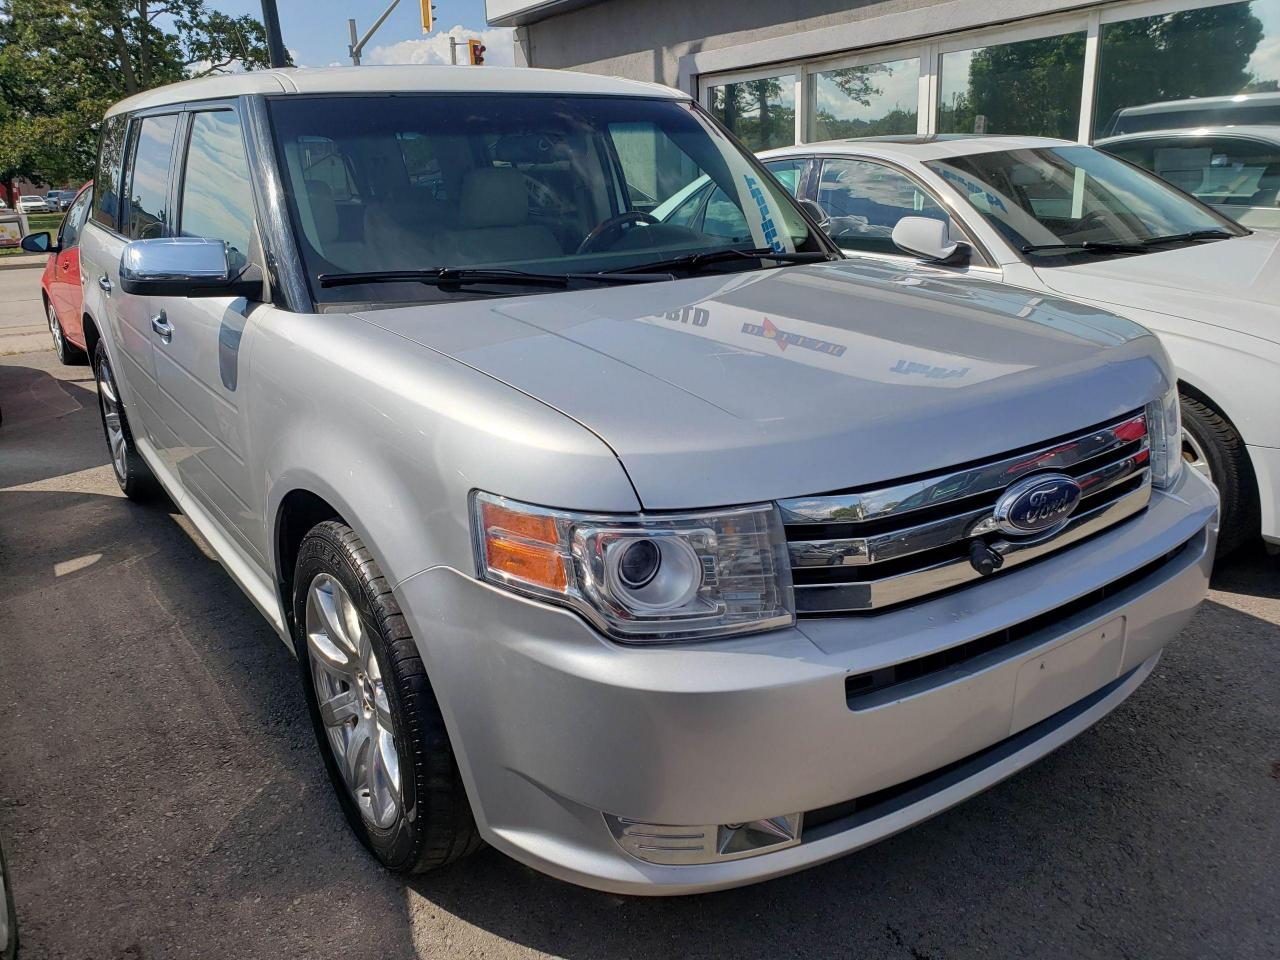 used 2010 ford flex limited pano sunroof power tailgate 7 passenger for sale in hamilton, ontario carpages.ca